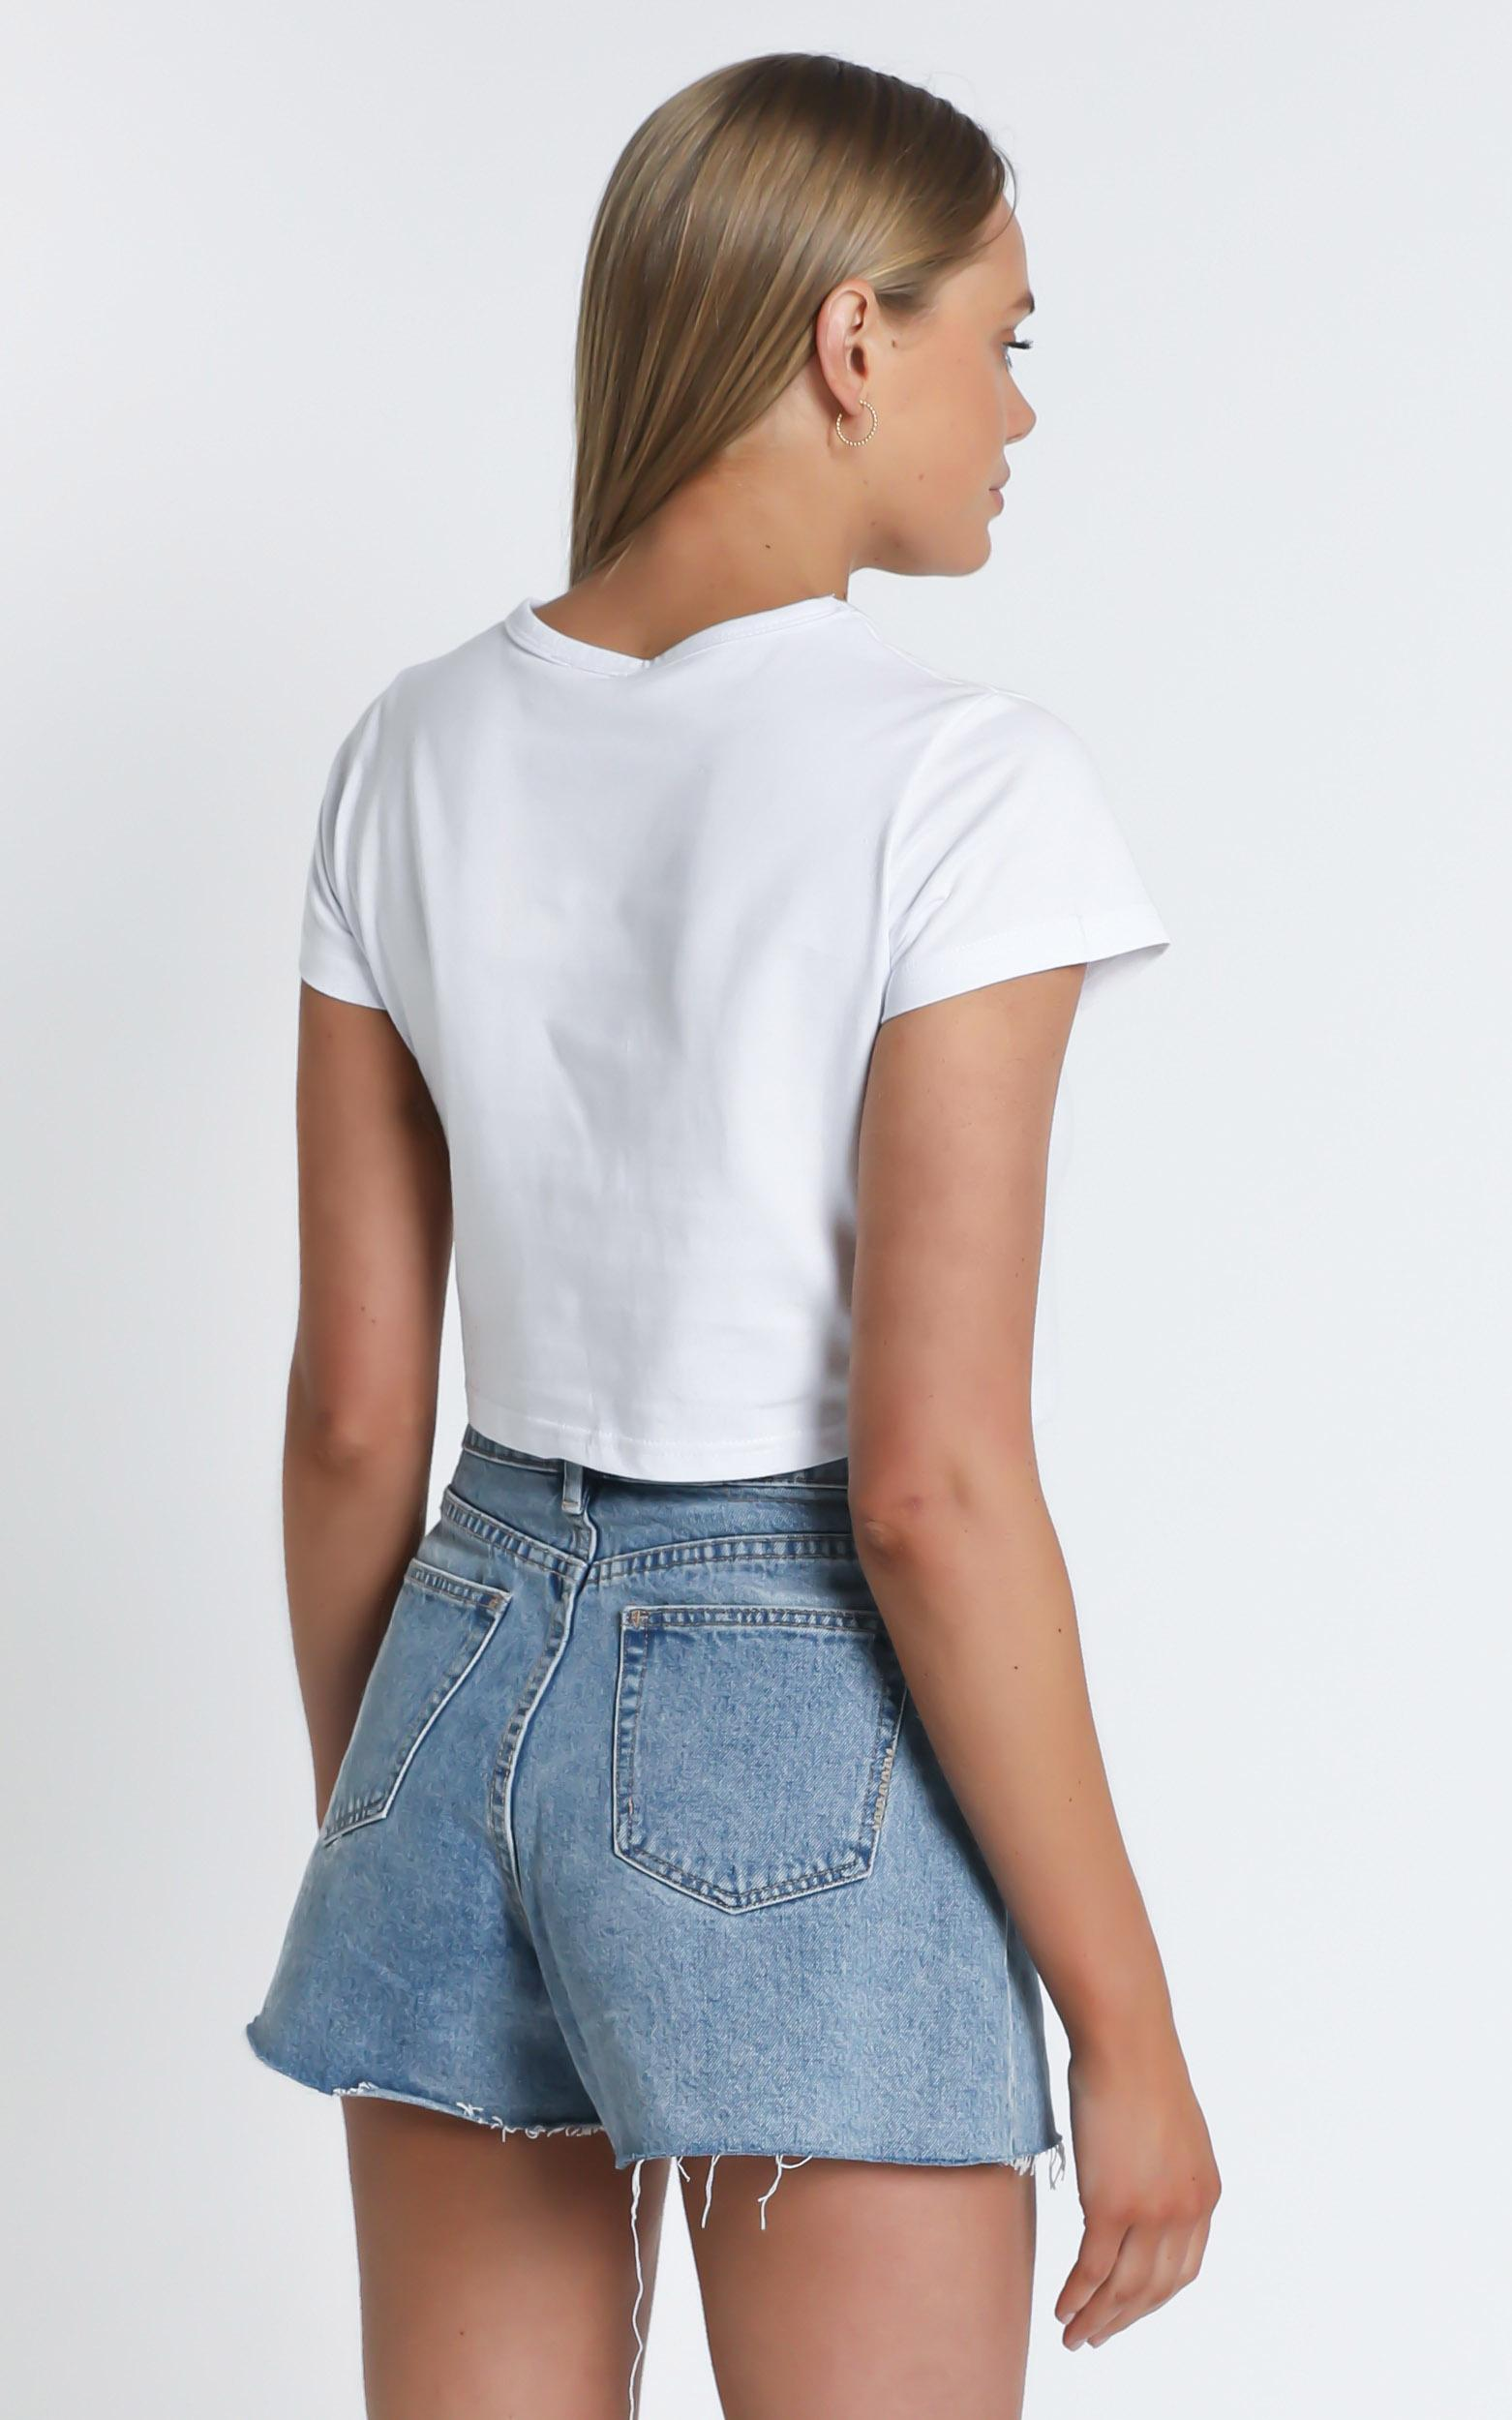 Getting What I Want Top In white - 20 (XXXXL), White, hi-res image number null